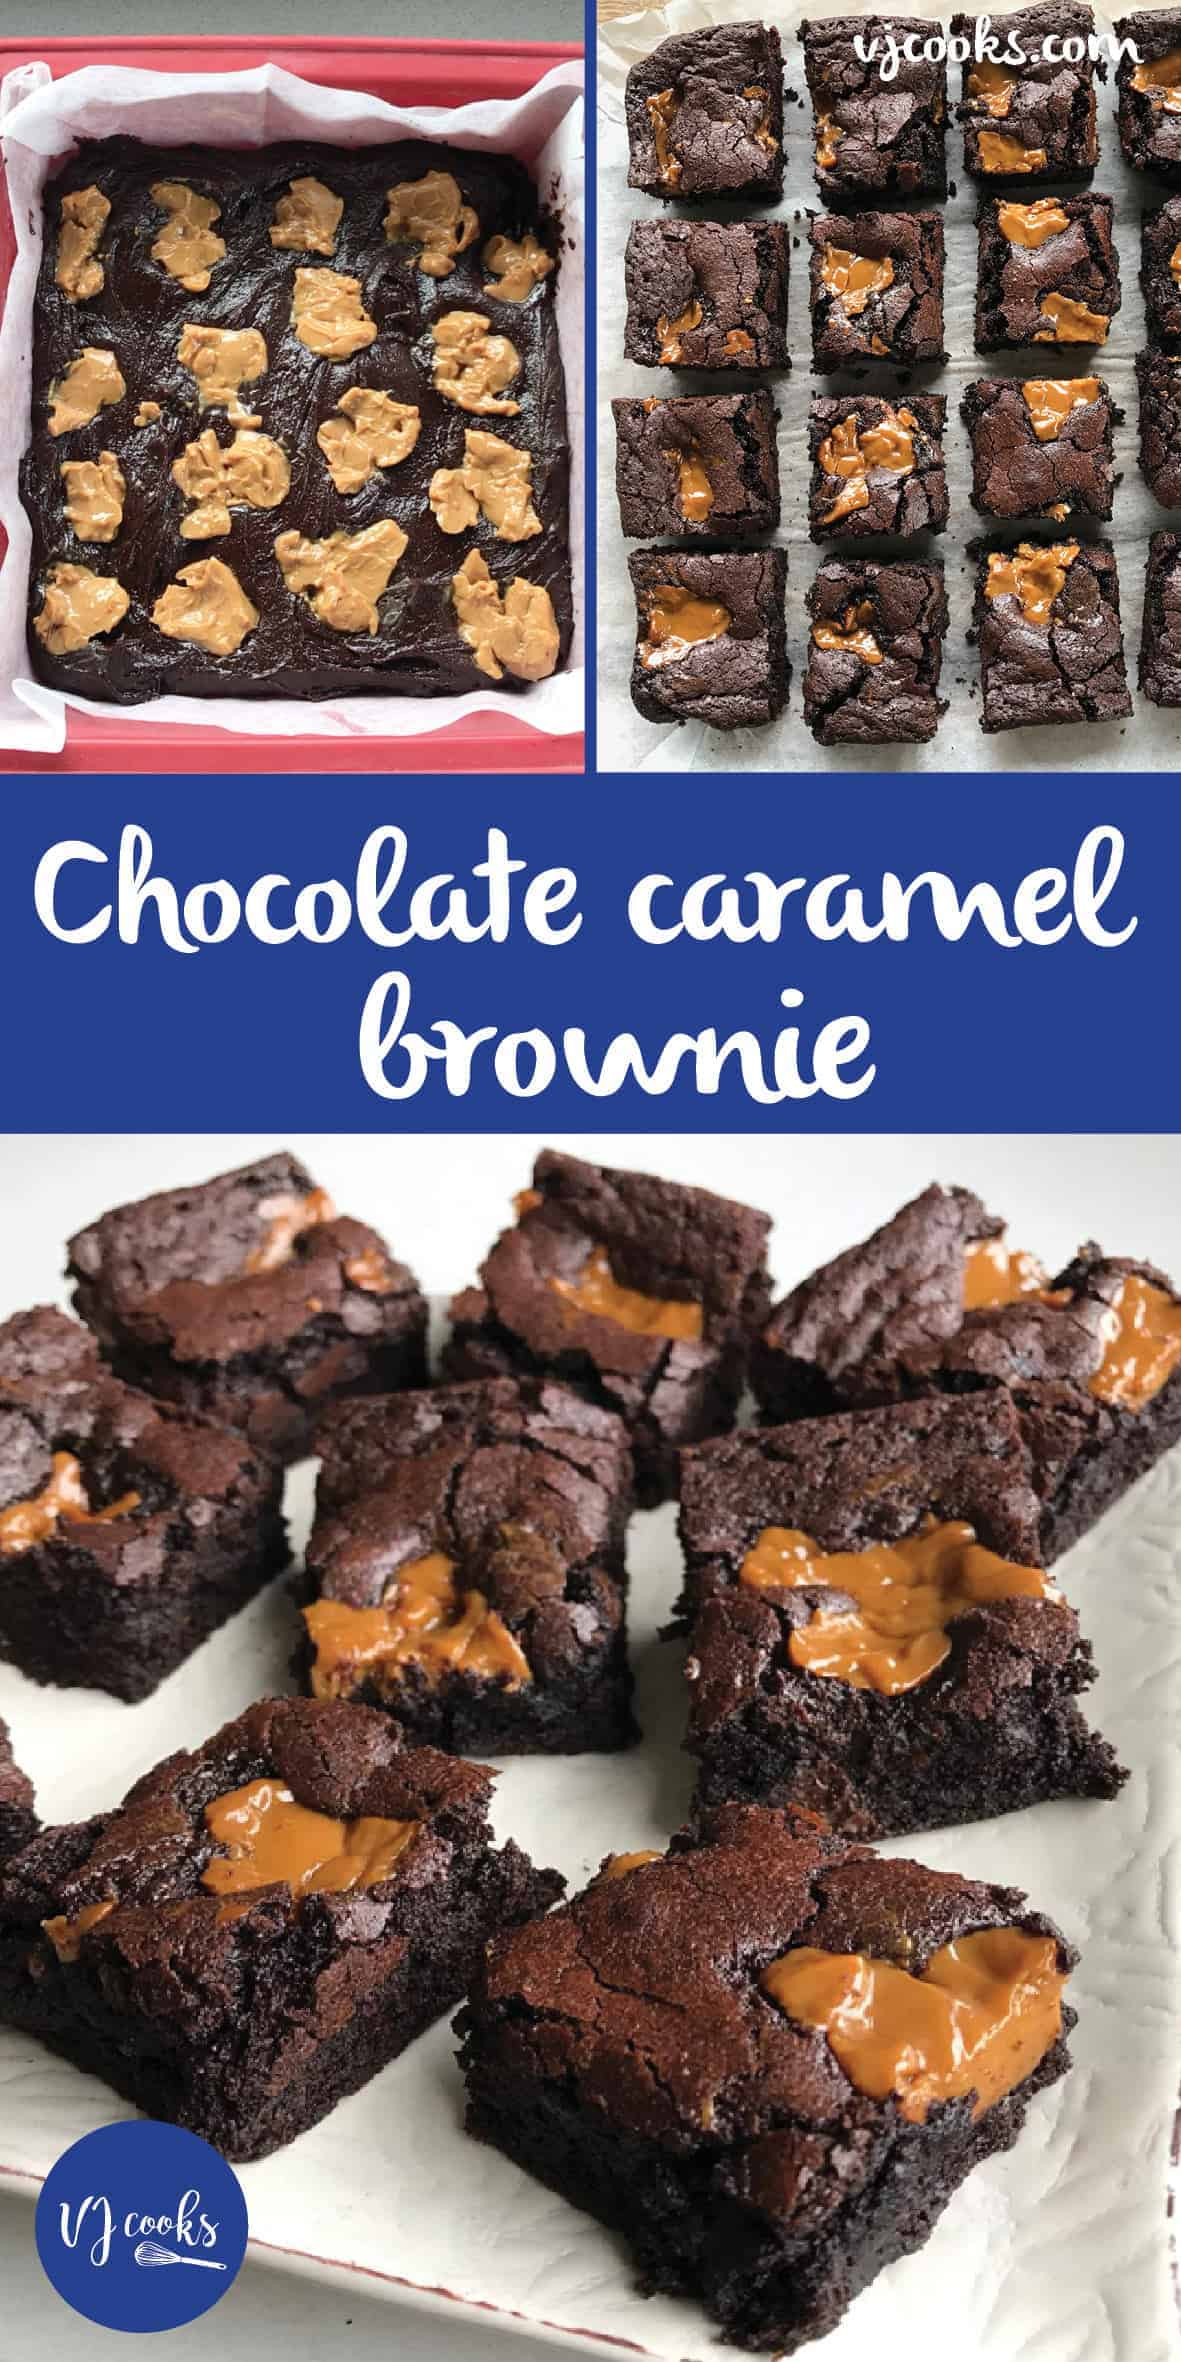 Chocolate caramel brownie by VJ cooks